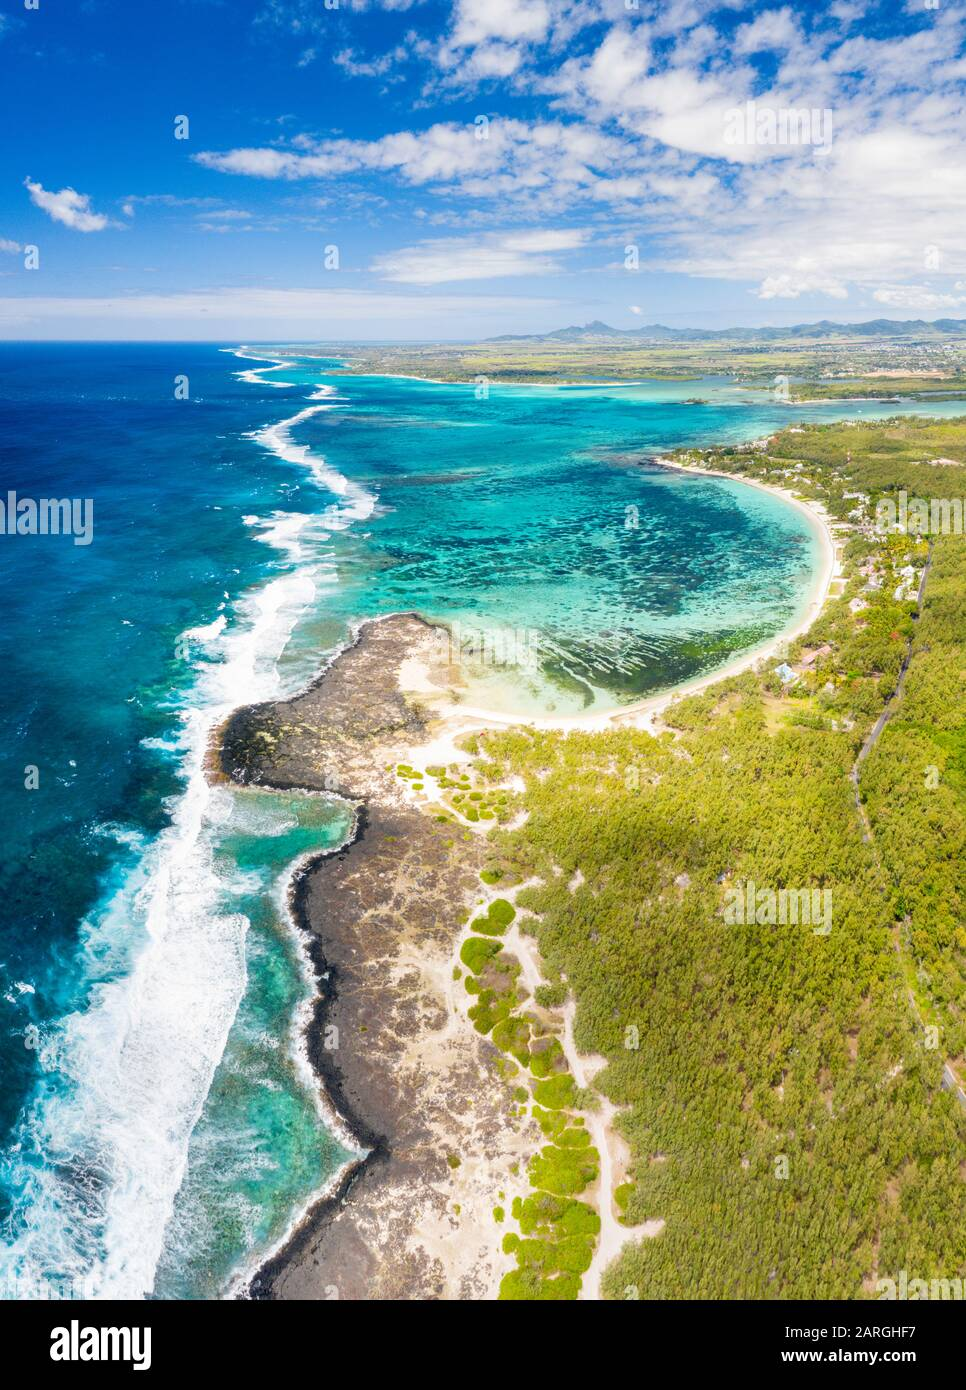 Aerial panoramic of tropical Public Beach washed by the ocean waves, Poste Lafayette, East coast, Mauritius, Indian Ocean, Africa Stock Photo